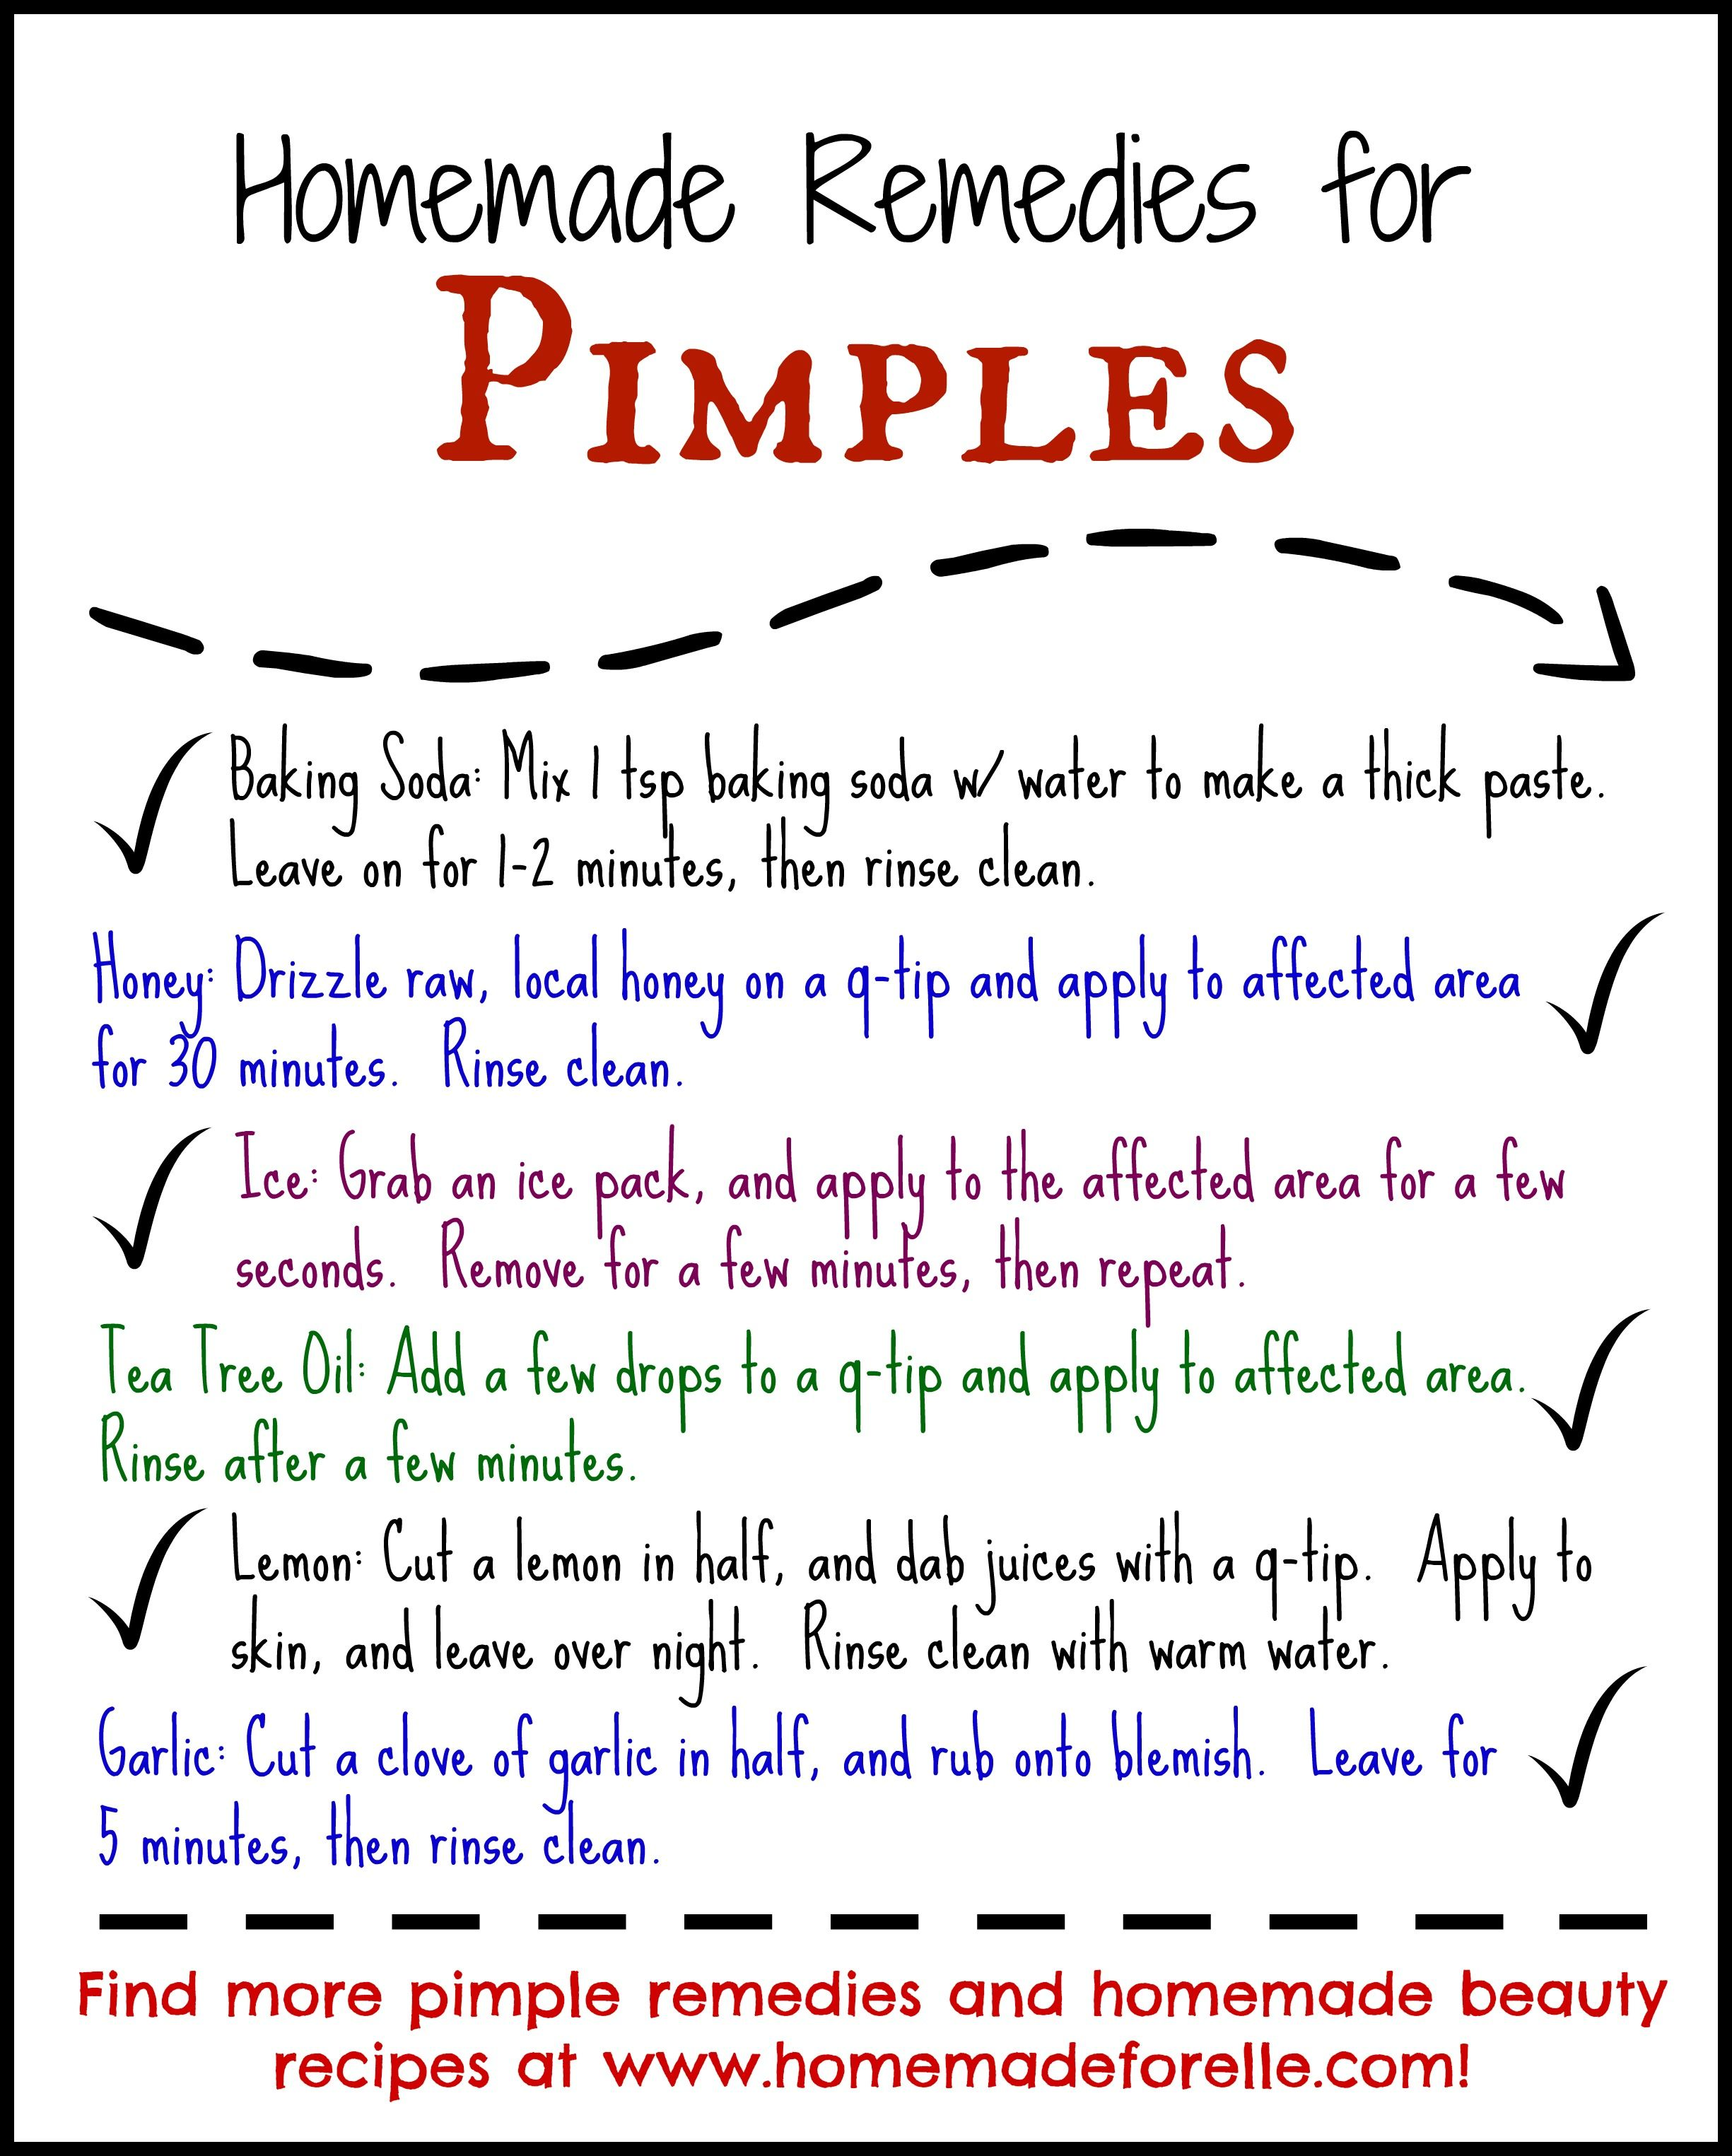 Homemade Beauty Tips for Pimples  Homemade beauty tips, Pimples